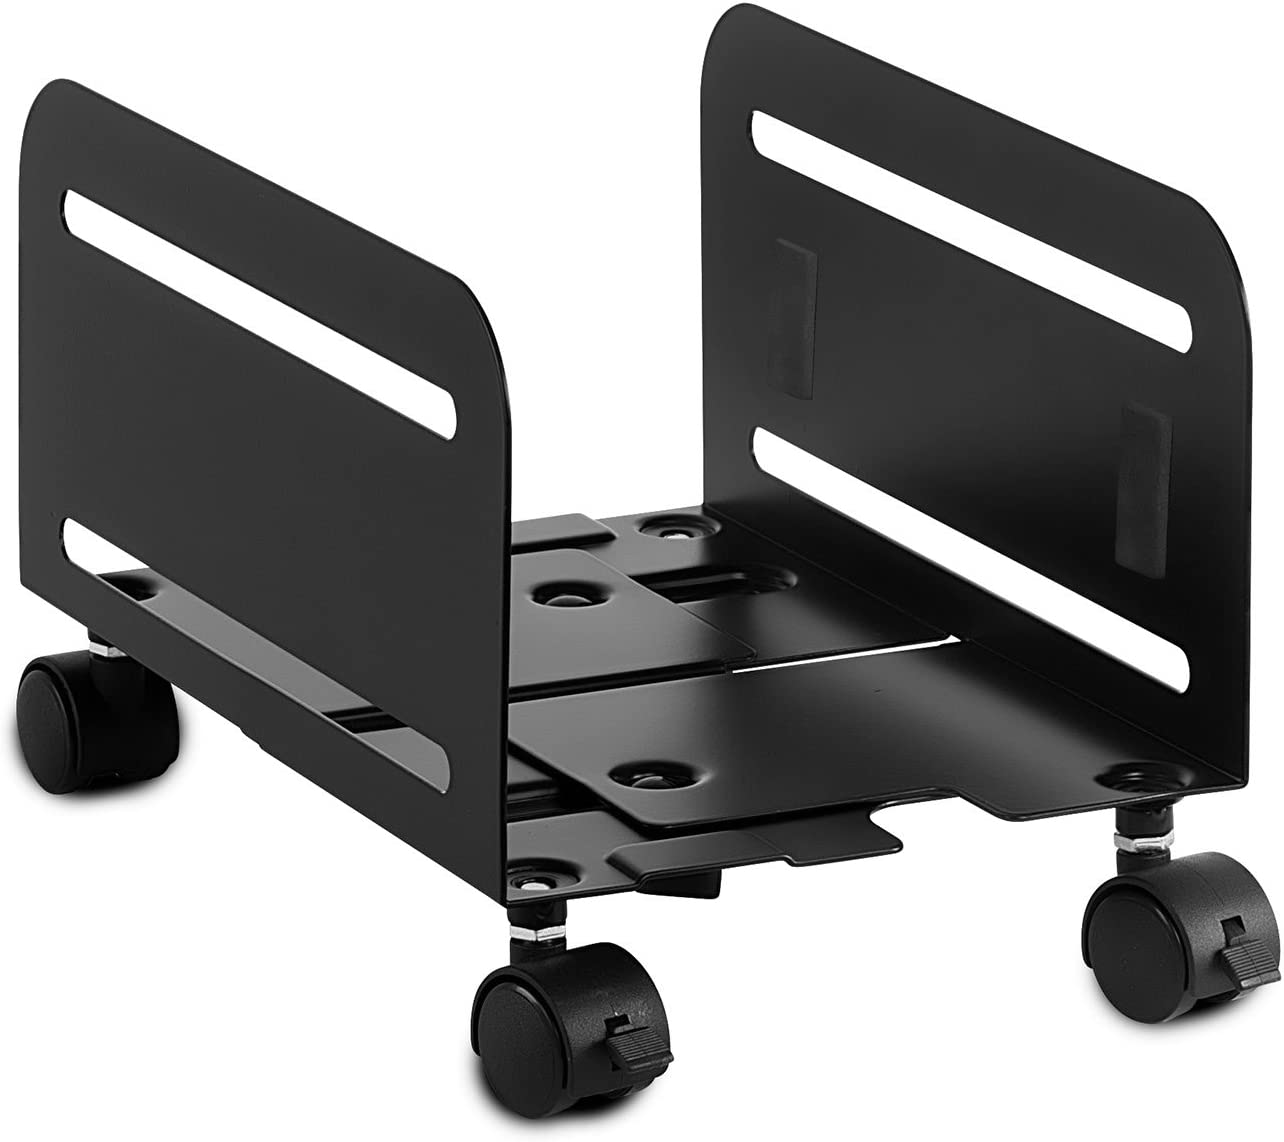 Mount-It! Rolling CPU Stand with Wheels, Heavy Duty Desktop Computer Tower Cart with Ventilation and Adjustable Width from 4.87 to 8.5 Inches, Steel : Office Products